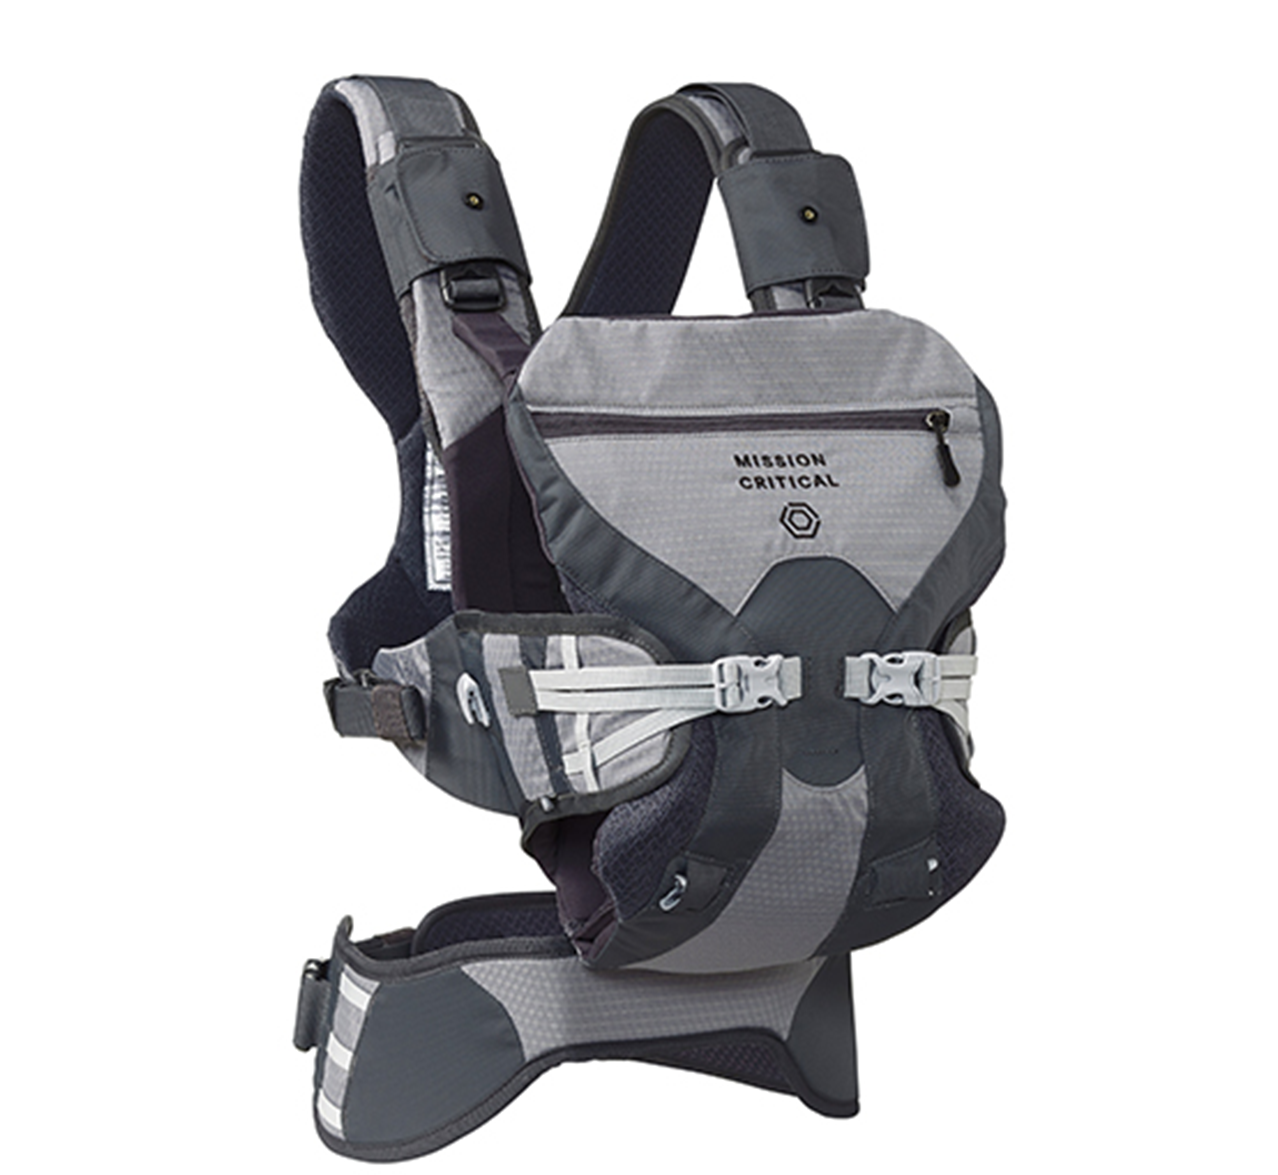 S.02 Baby Carrier Features - Echo Kit - Mission Critical